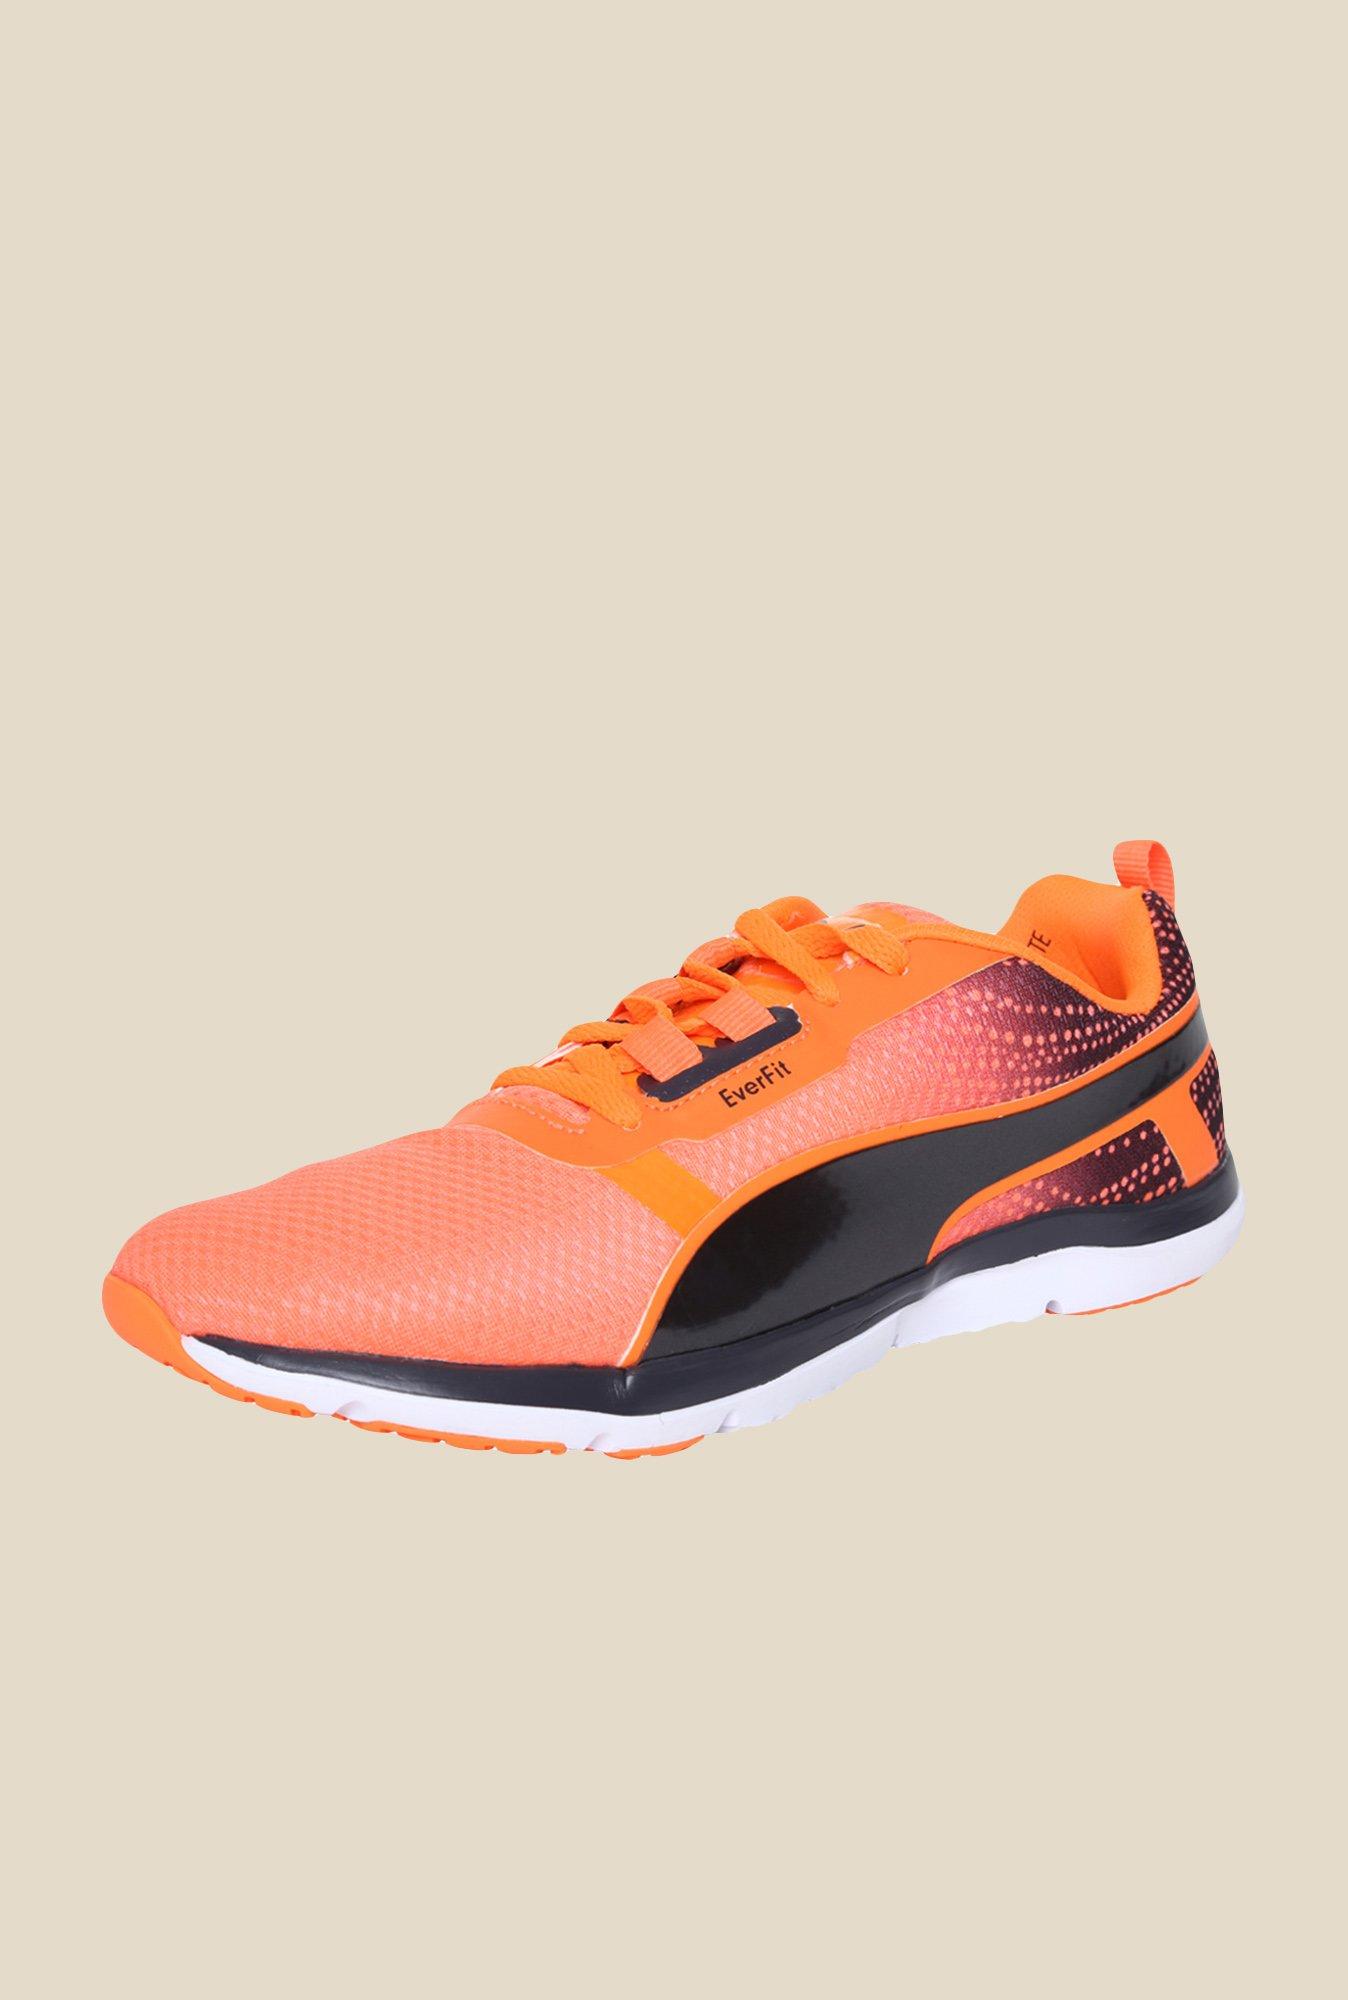 Puma Pulse Flex XT Graphic Fluo Peach Running Shoes